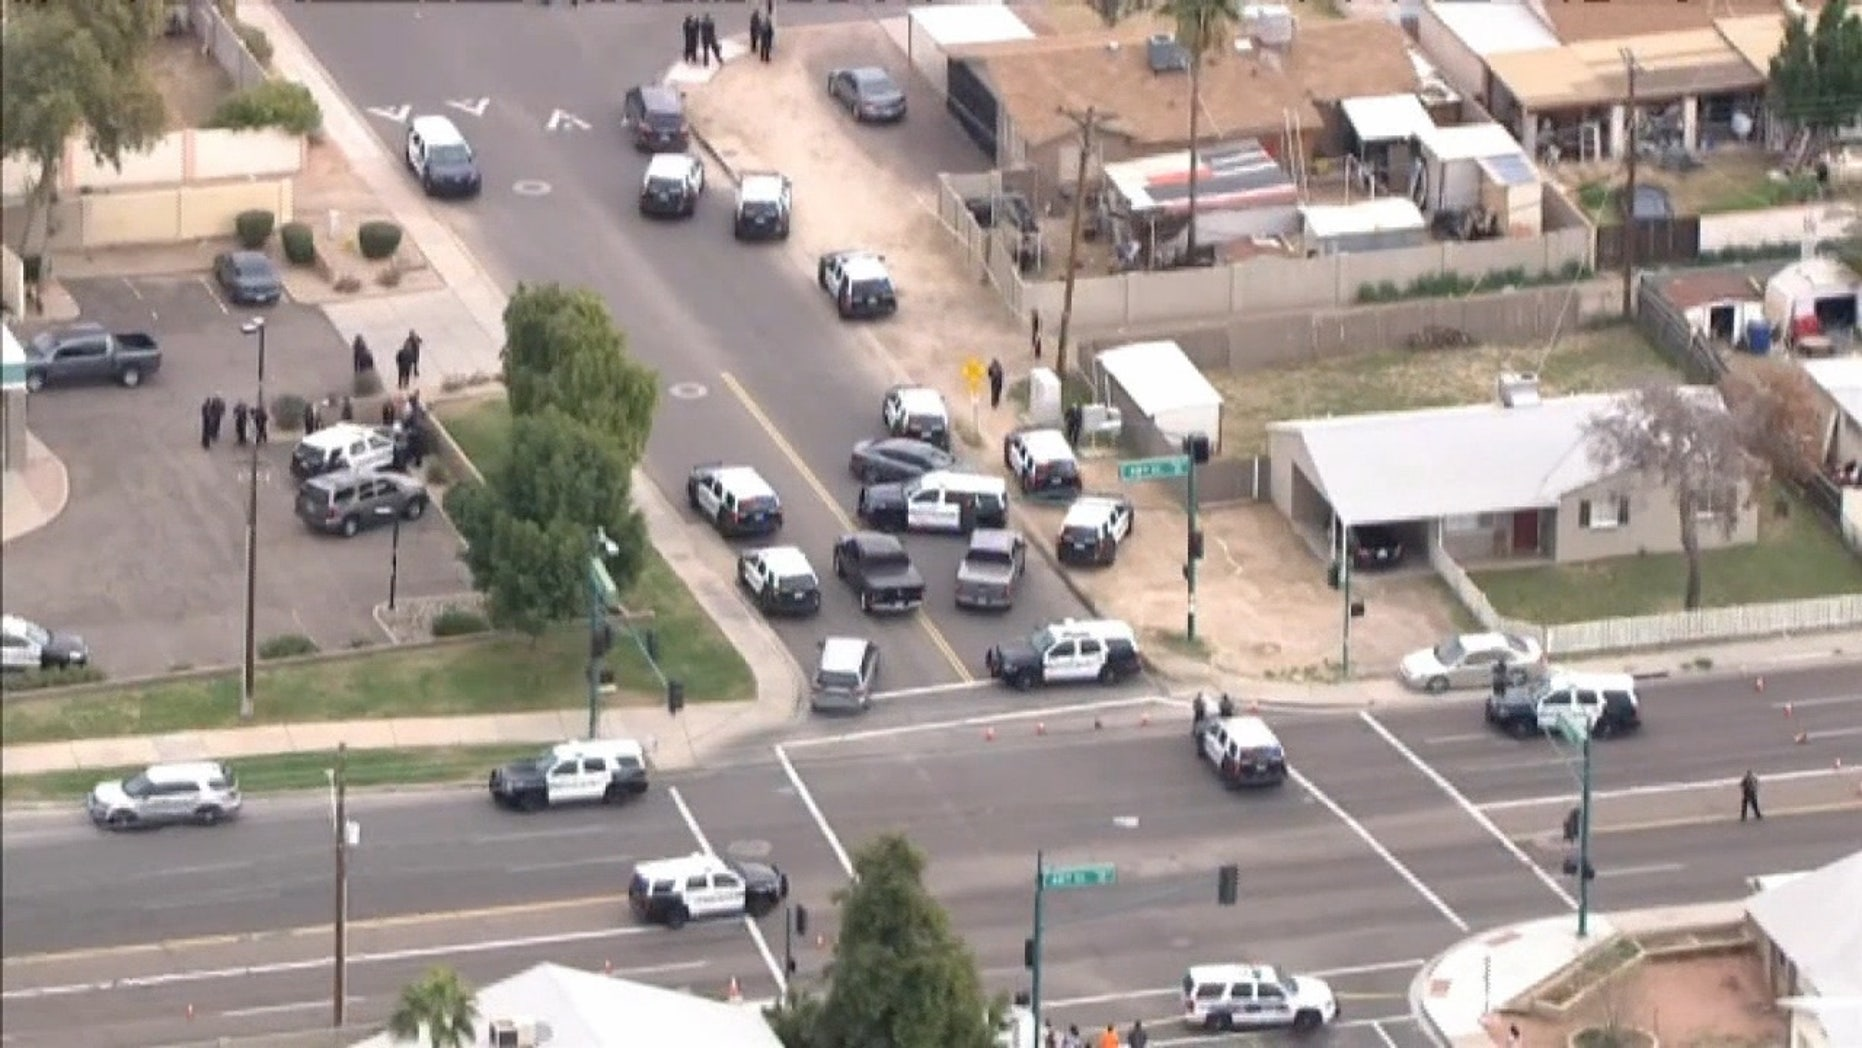 A burglary suspect shot to death by an officer Tuesday was a 14-year-old boy carrying a replica gun, police in Arizona said.